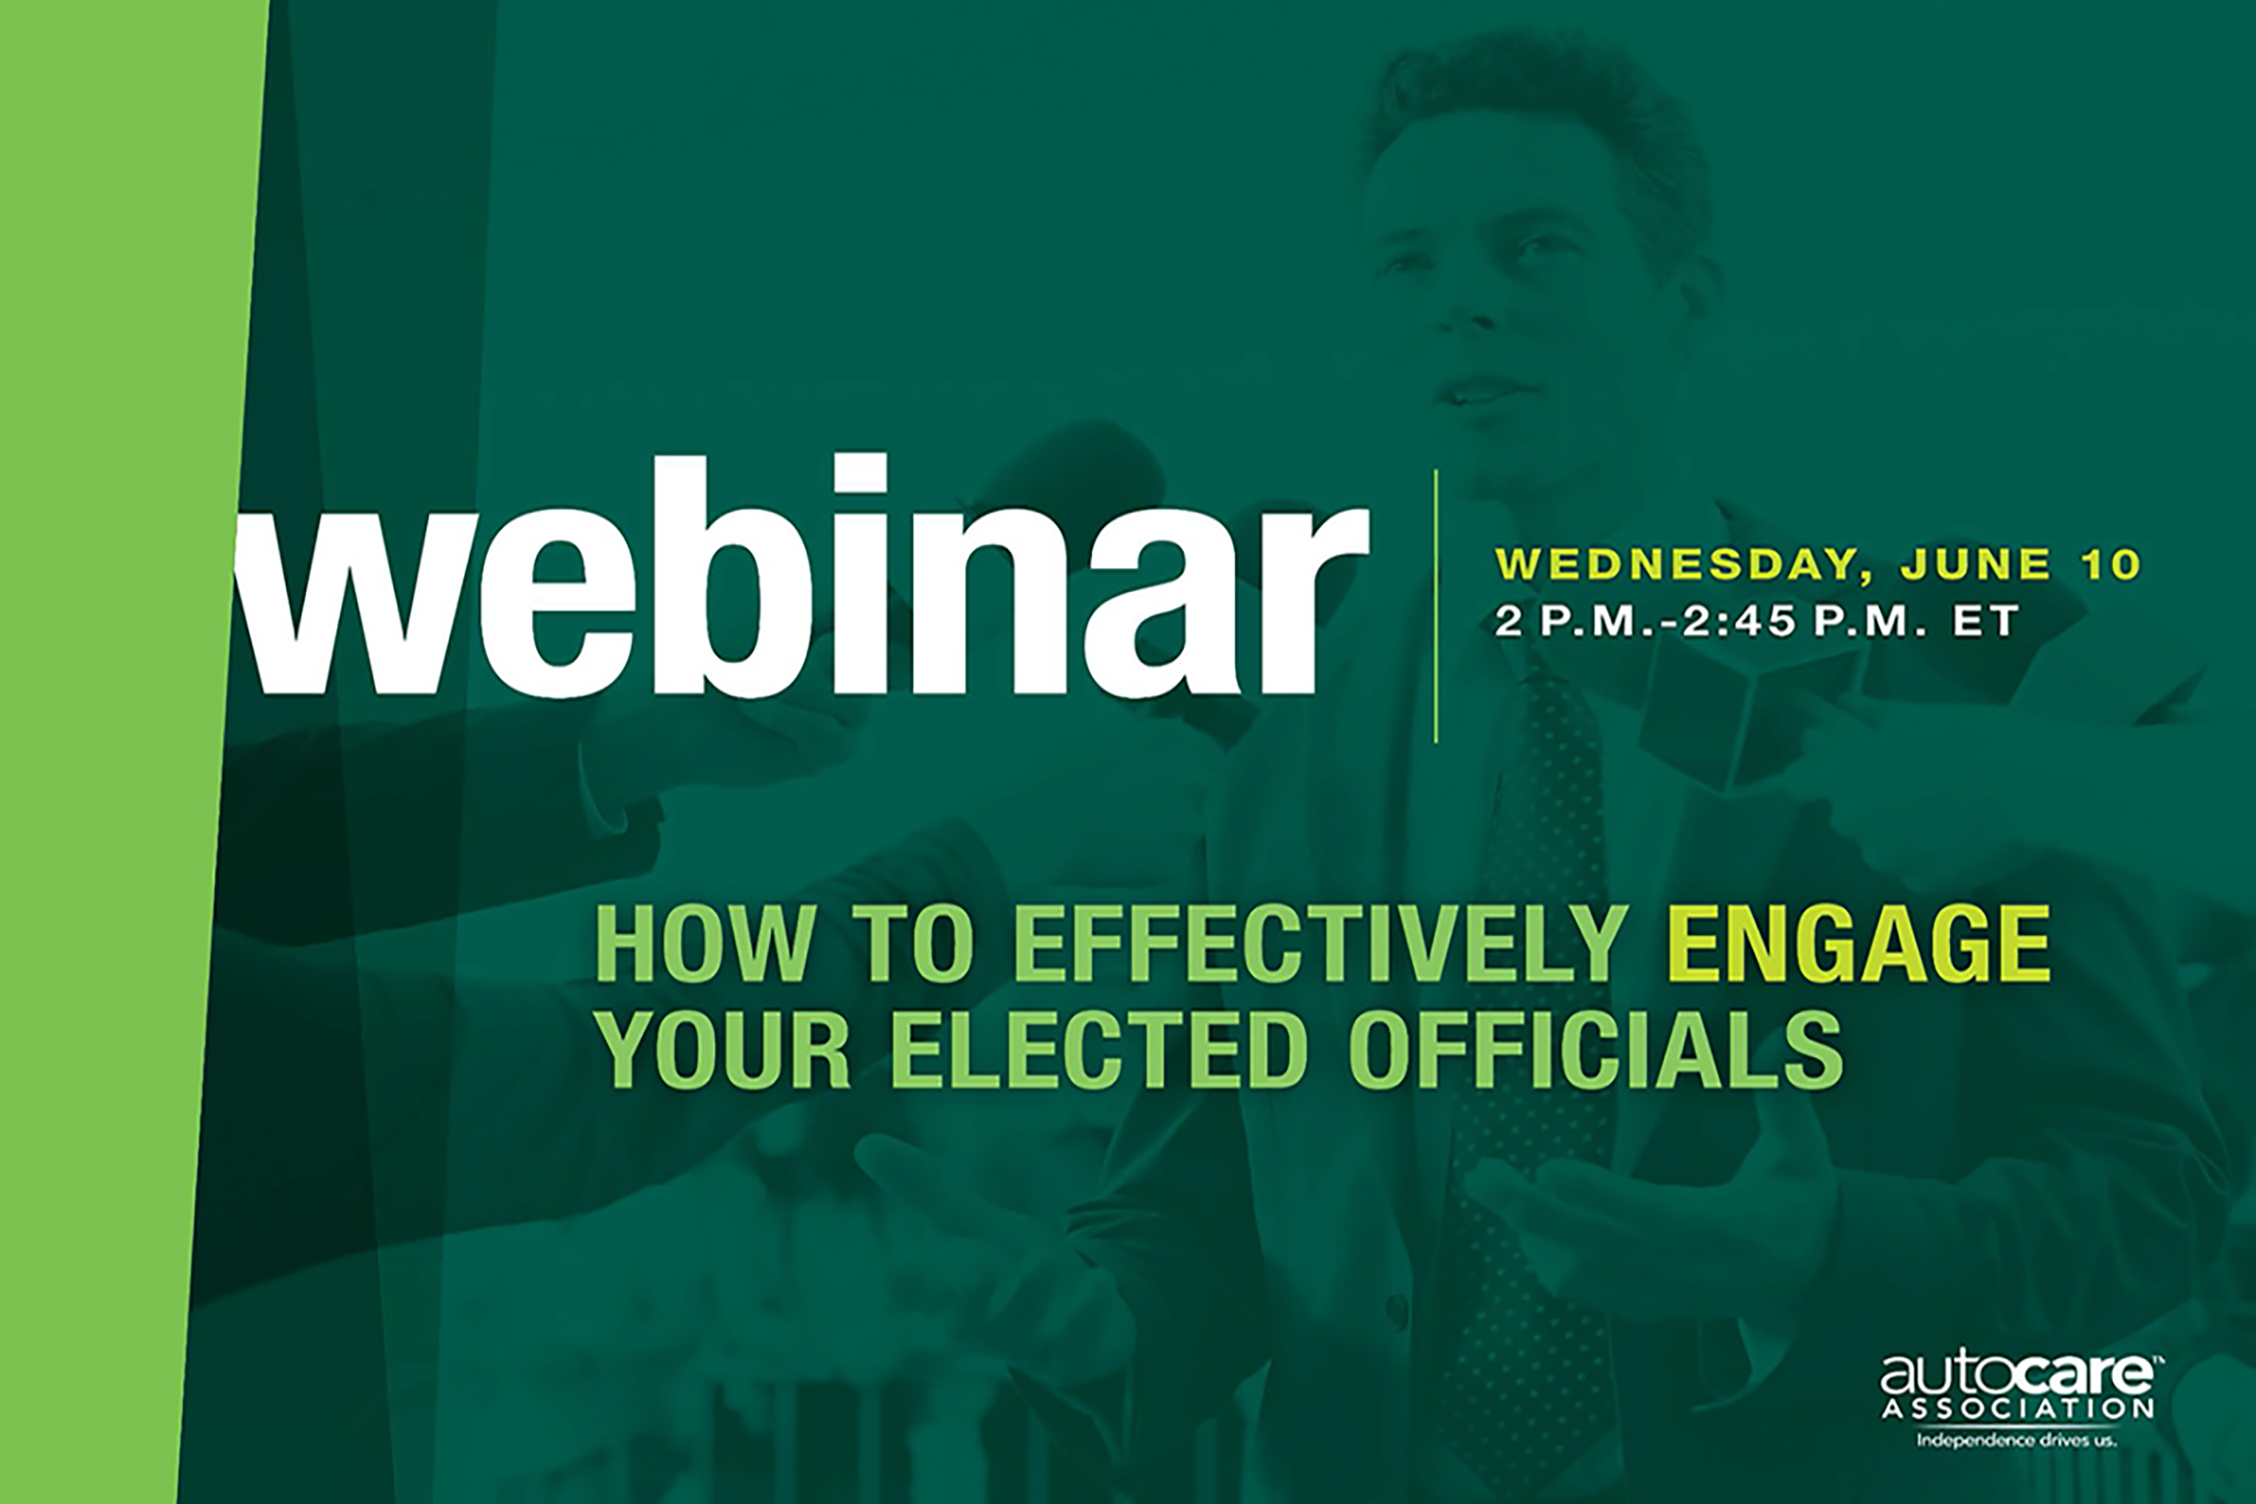 How to Effectively Engage Your Elected Officials